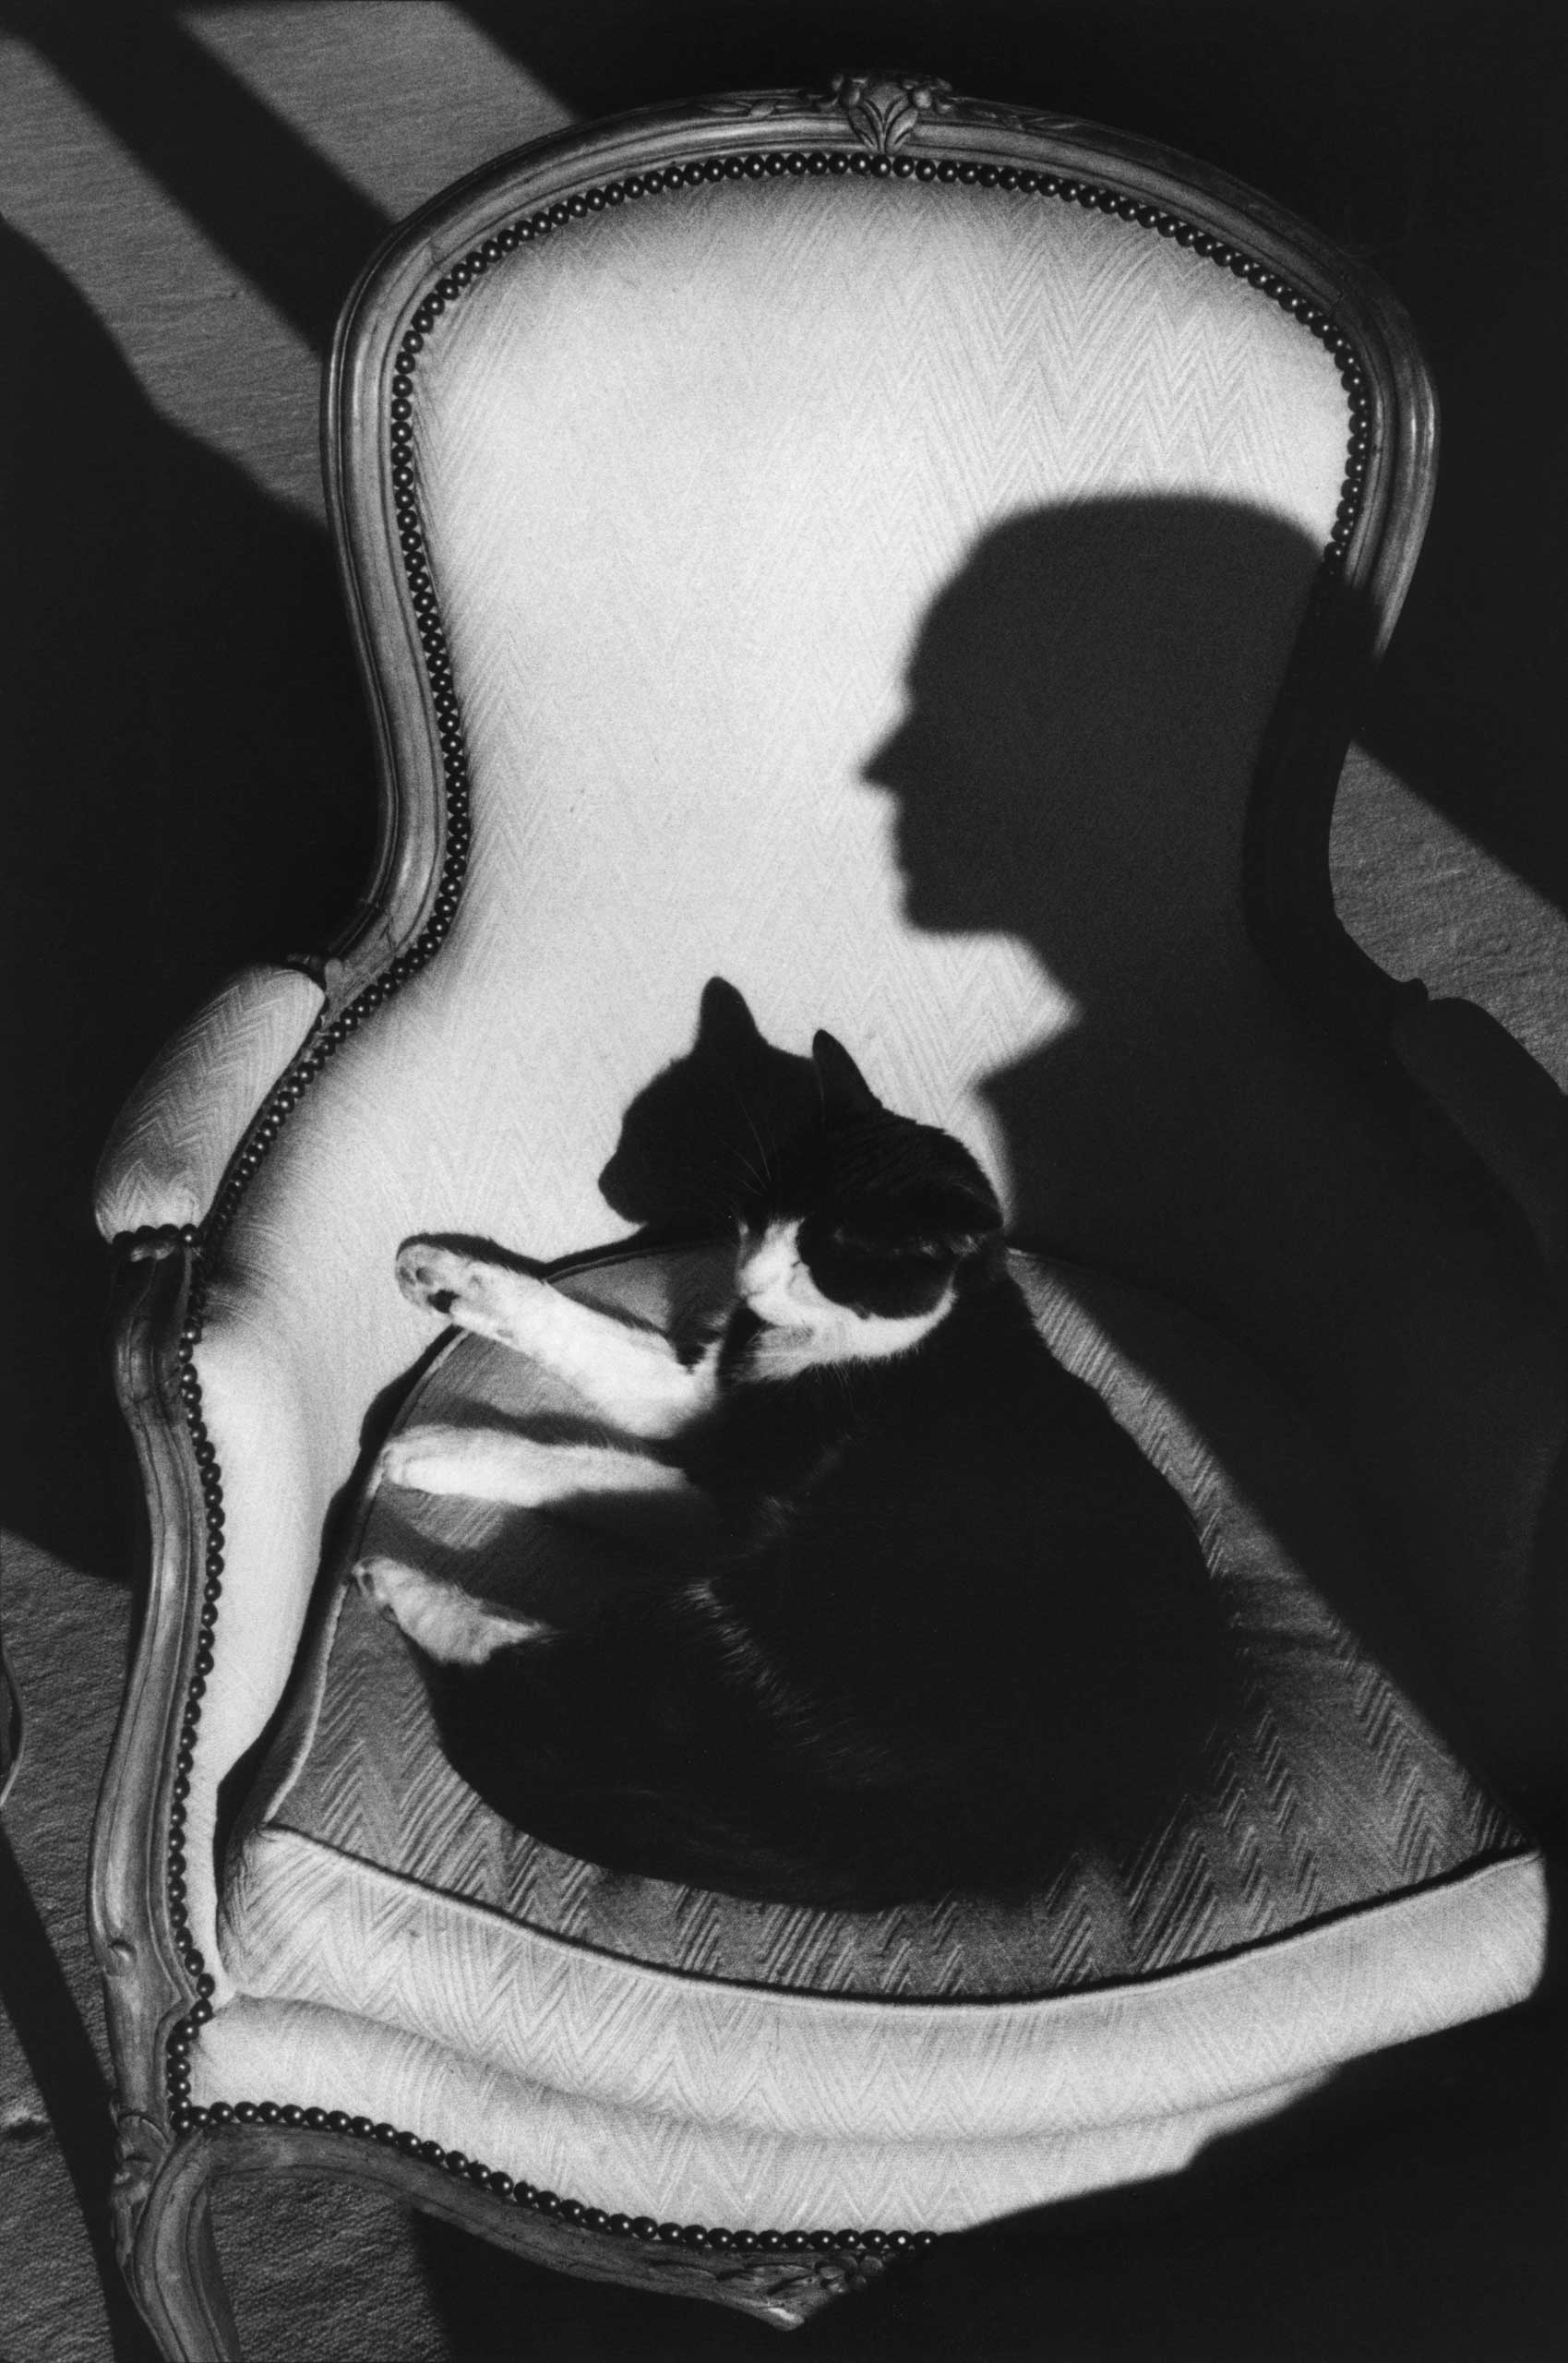 Our cat Ulysses and Martine's shadow, 1989.